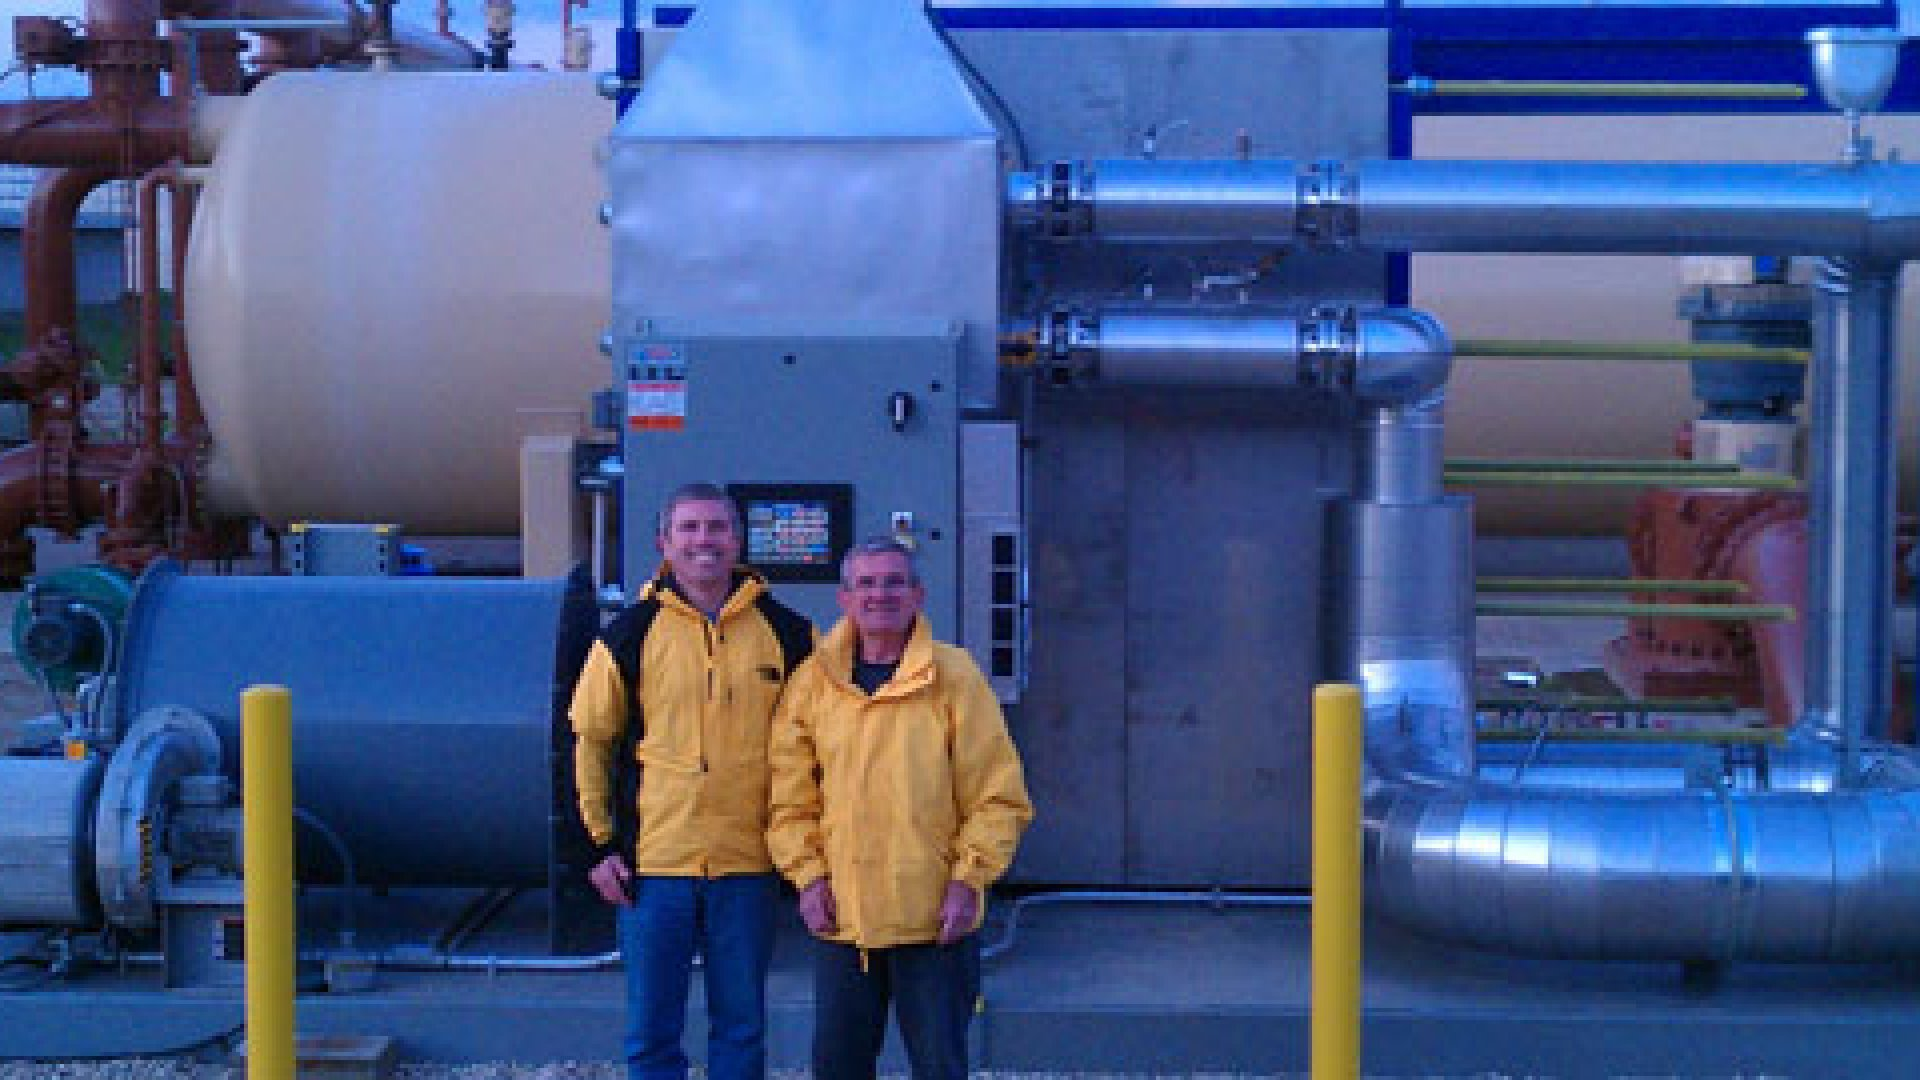 Pasteurization Technology Group was founded by Greg Ryan (right), a farmer and cattle rancher, and his son Greg Ryan Jr., PTG's current CEO. The company's technology (pictured) disinfects water without chemicals, while creating enough renewable energy to power the entire facility in the process.